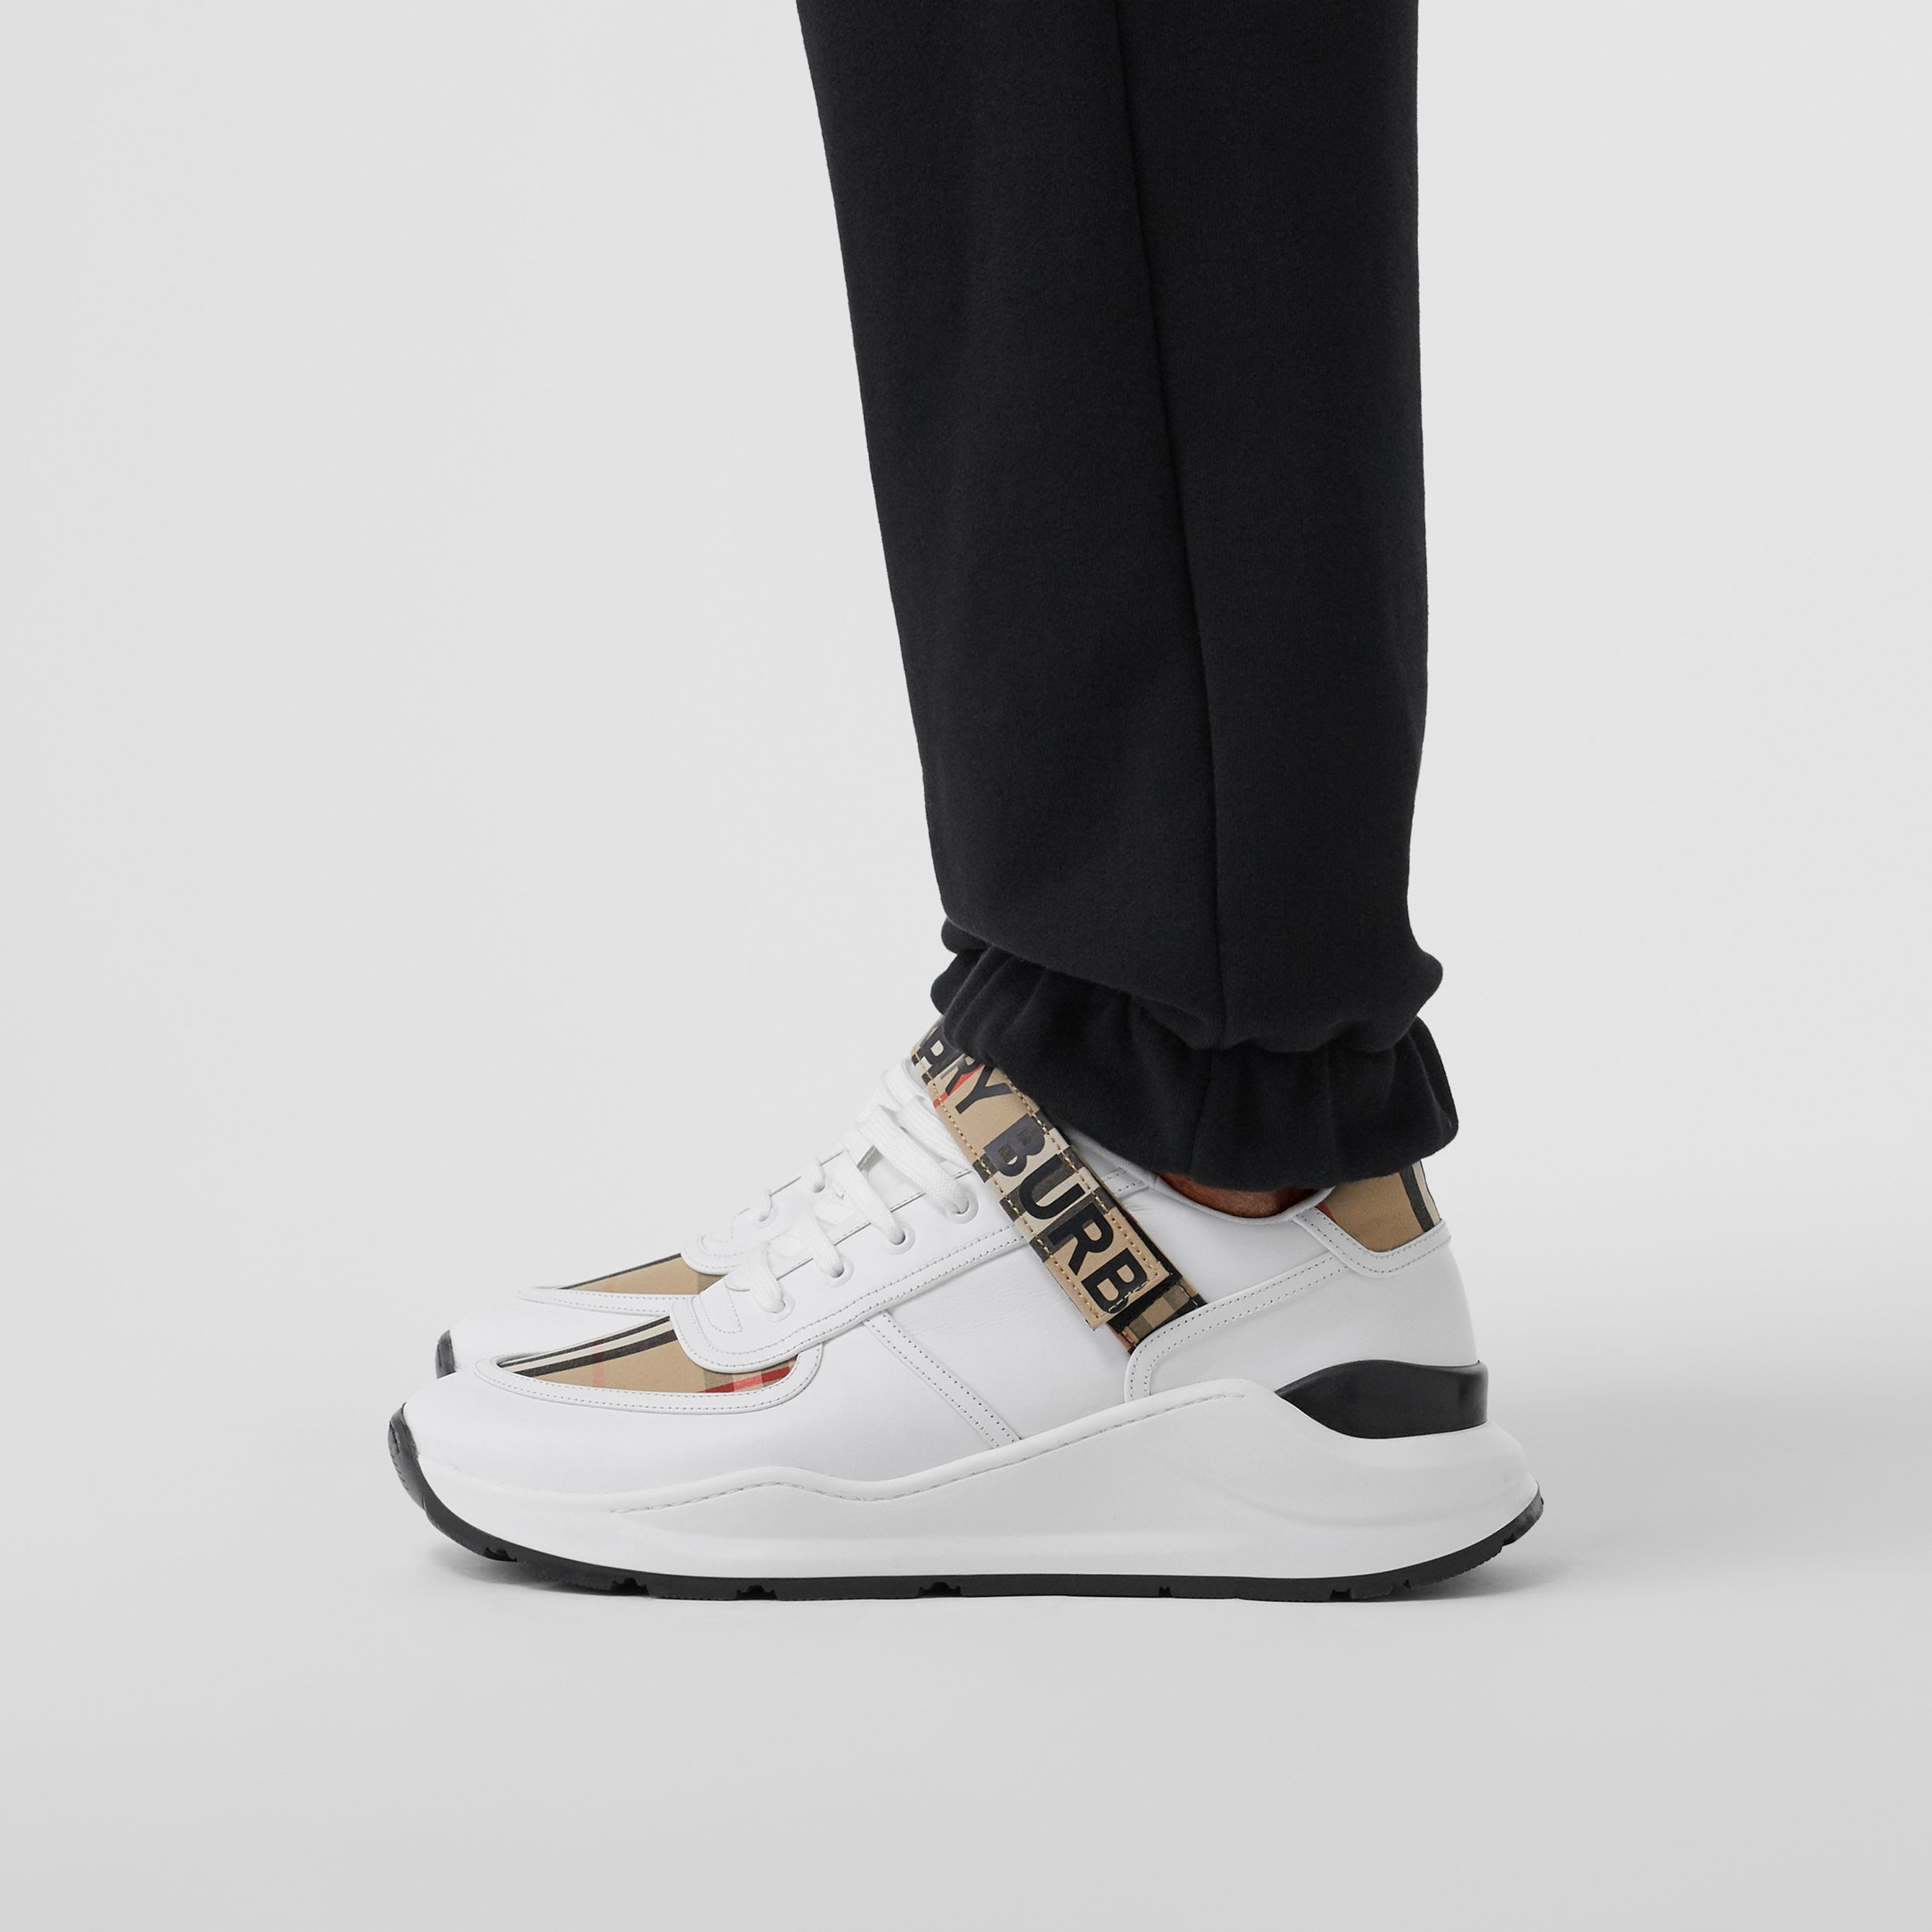 Logo Detail Leather and Vintage Check Sneakers in Archive Beige/white - Men | Burberry - 3